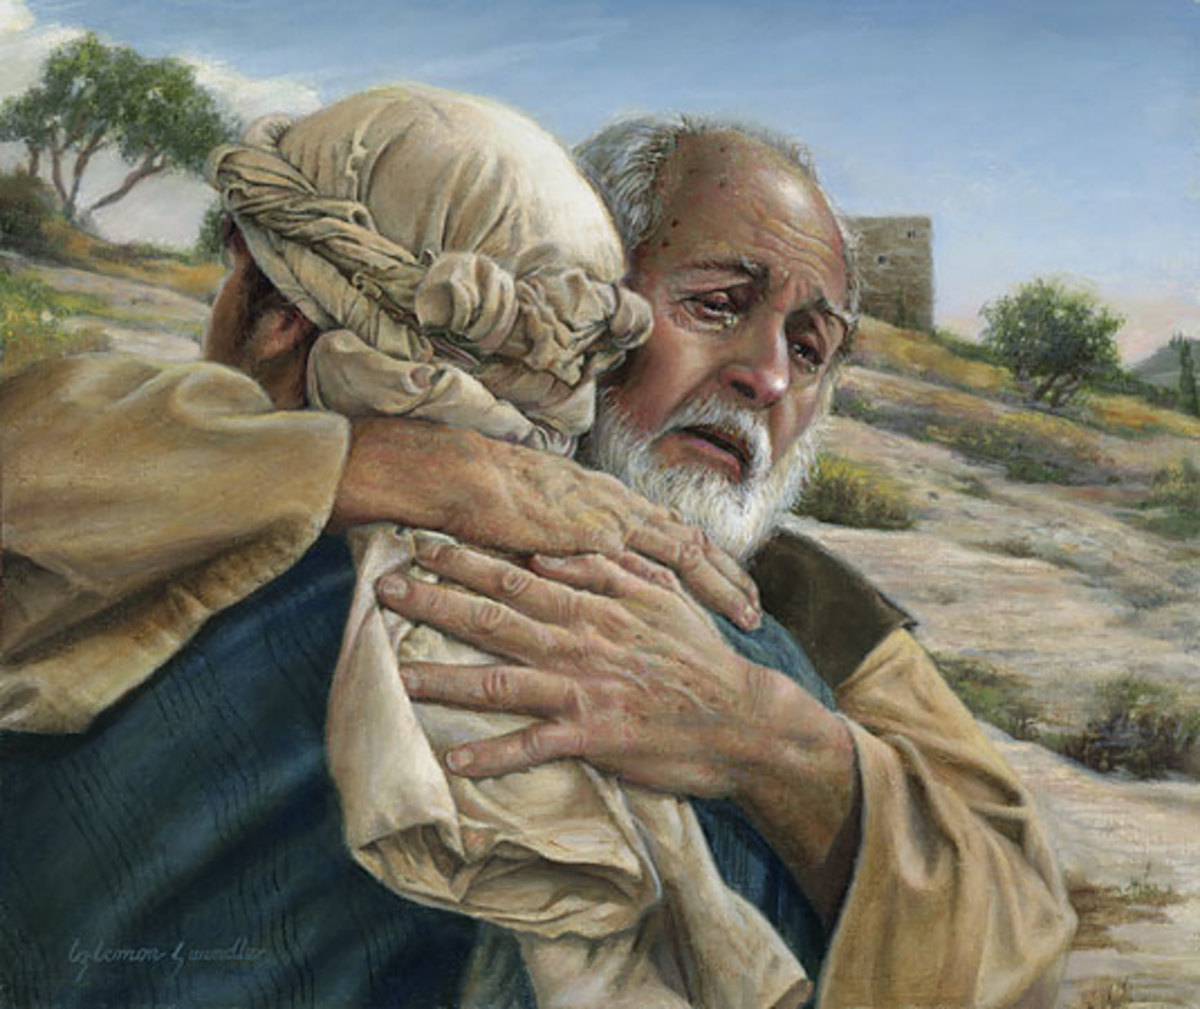 The Other Son - a Different View of the Prodigal Son